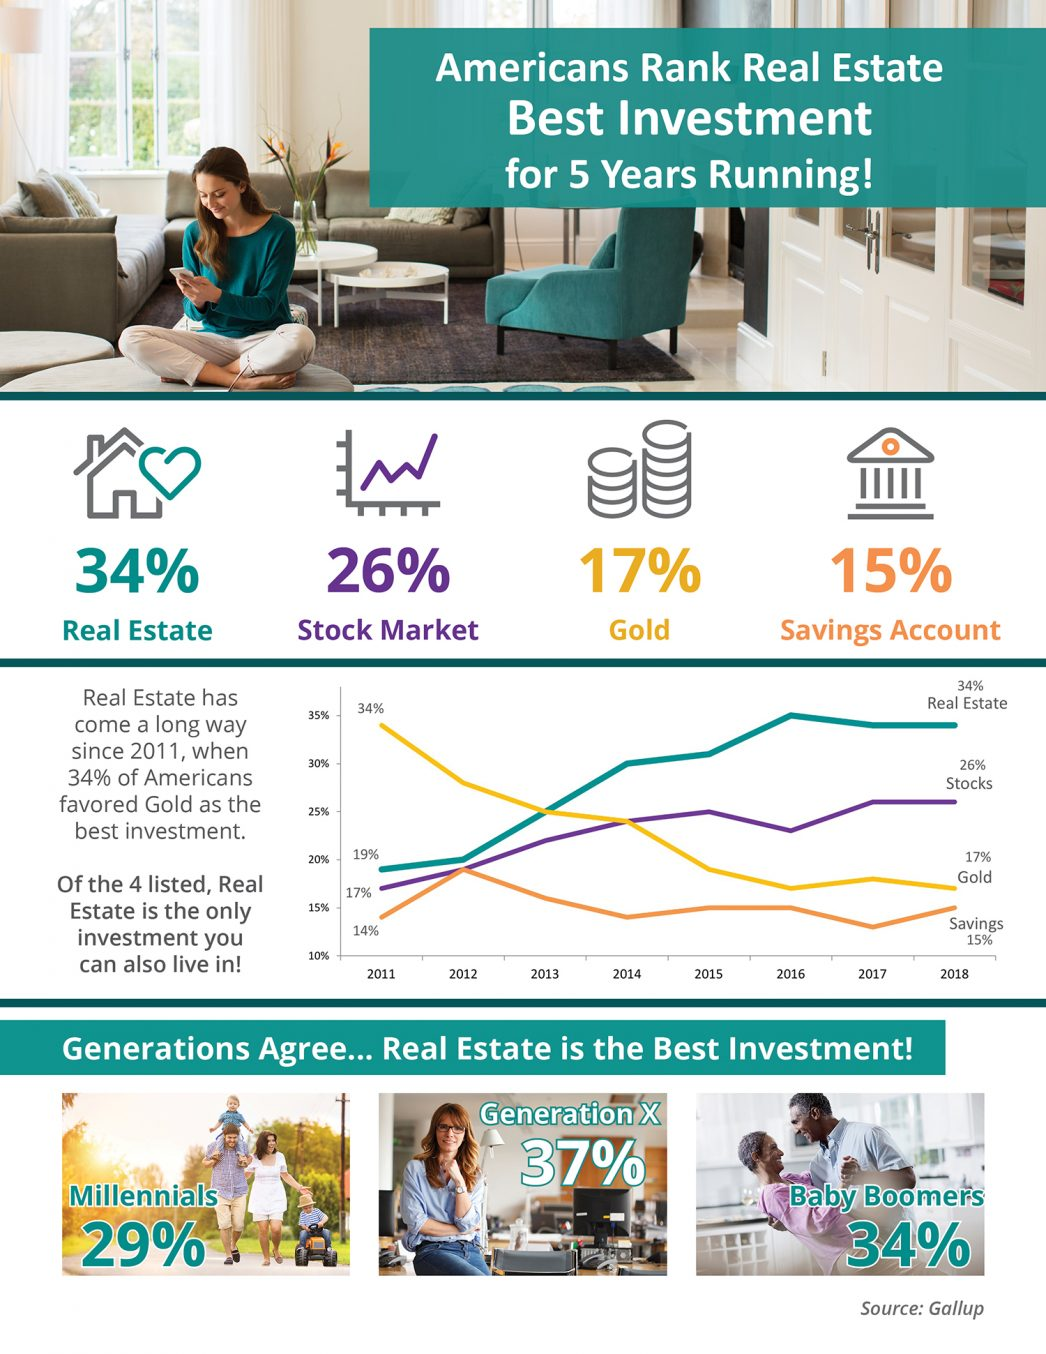 Americans Rank Real Estate Best Investment for 5 Years Running! [INFOGRAPHIC] | MyKCM